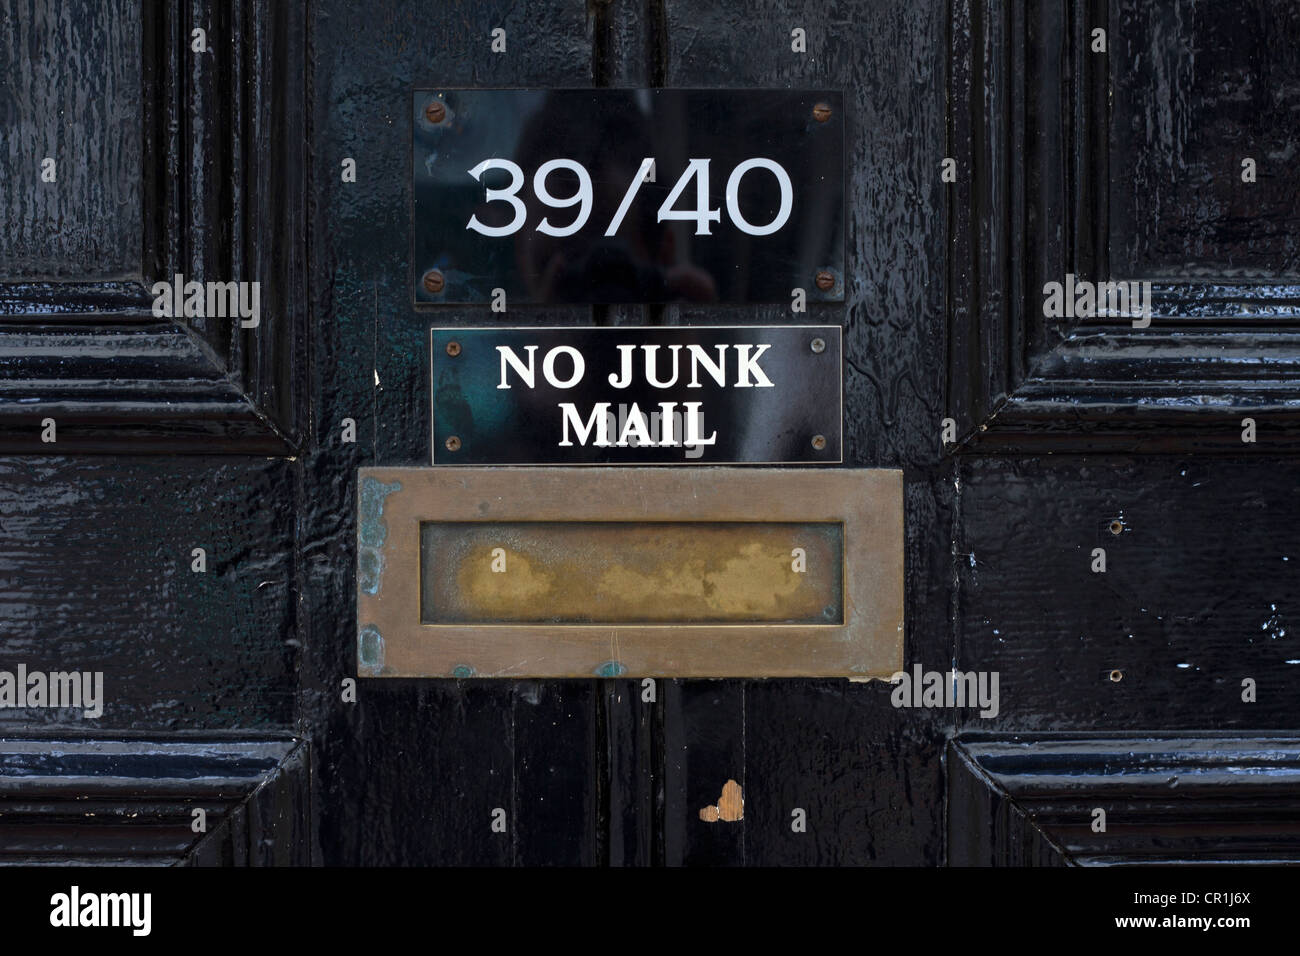 Brass letterbox with no junk mail sign. - Stock Image